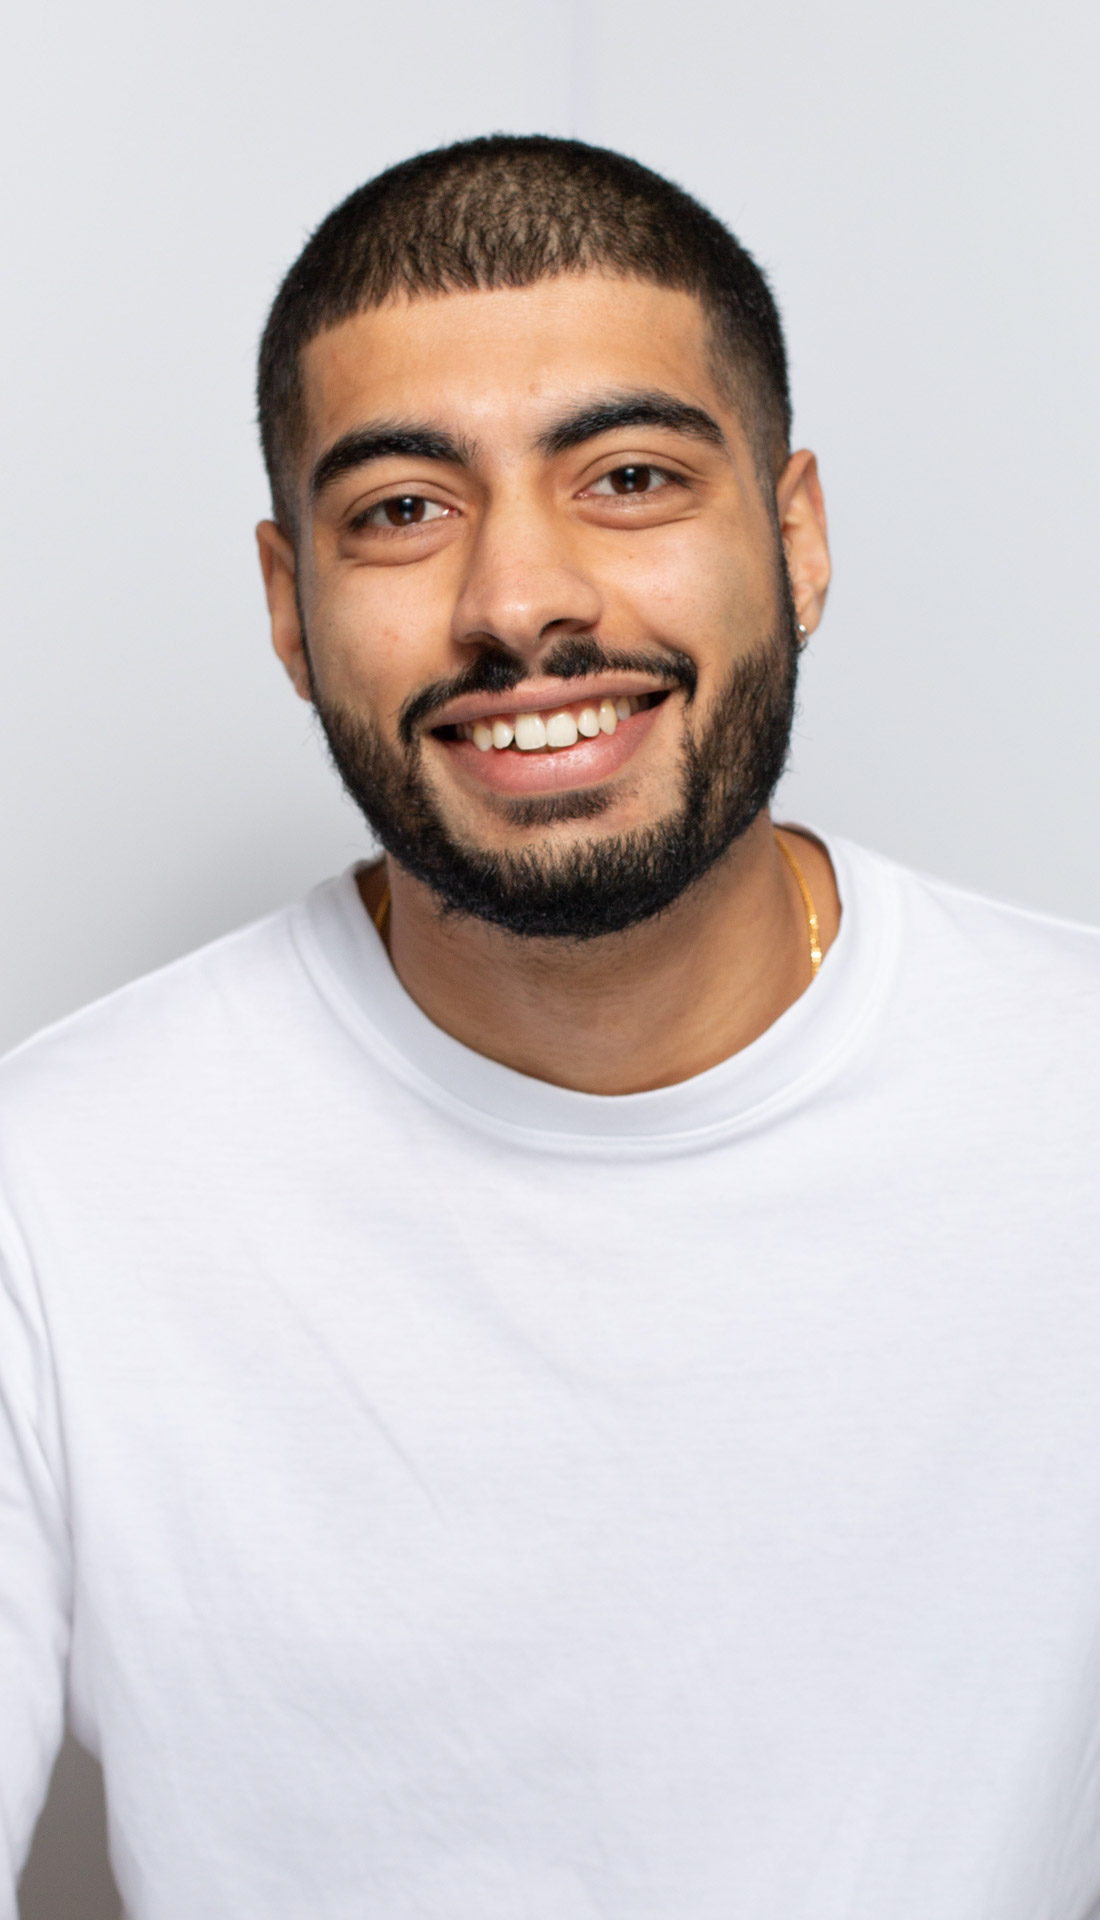 Simple white background headshot of a man wearing a white top smiling